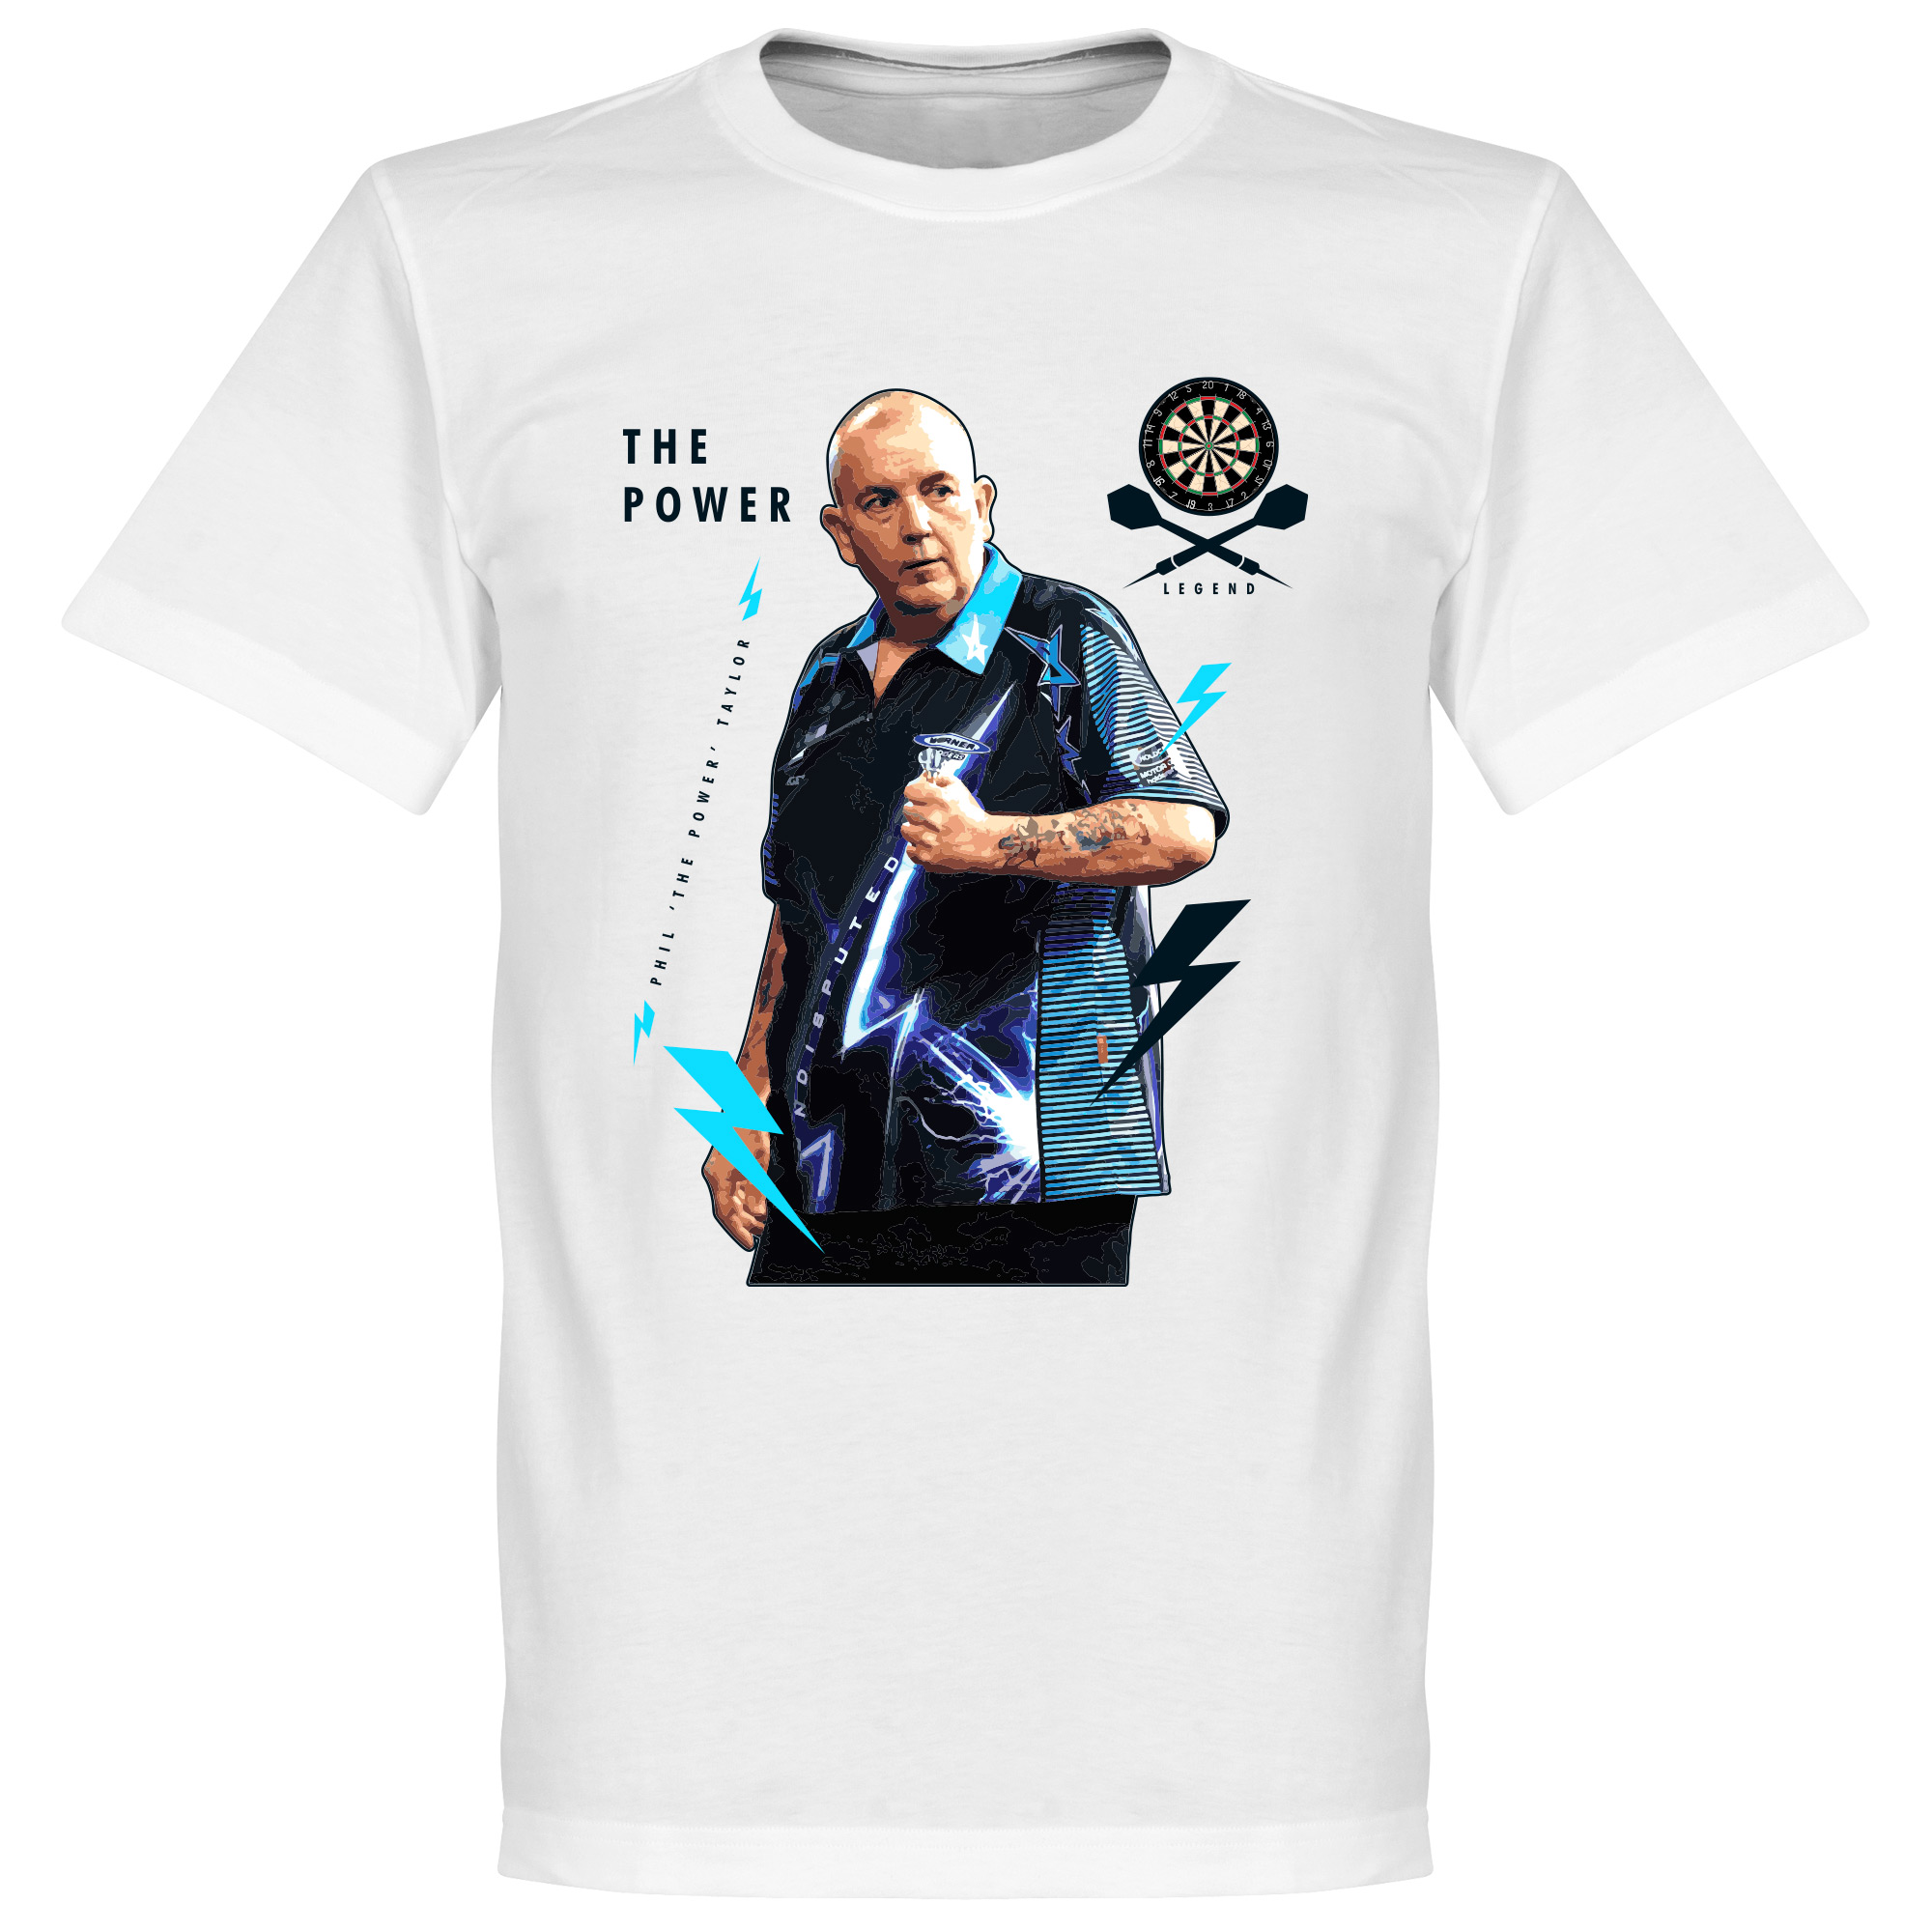 Phil The Power Taylor Tee - White - S